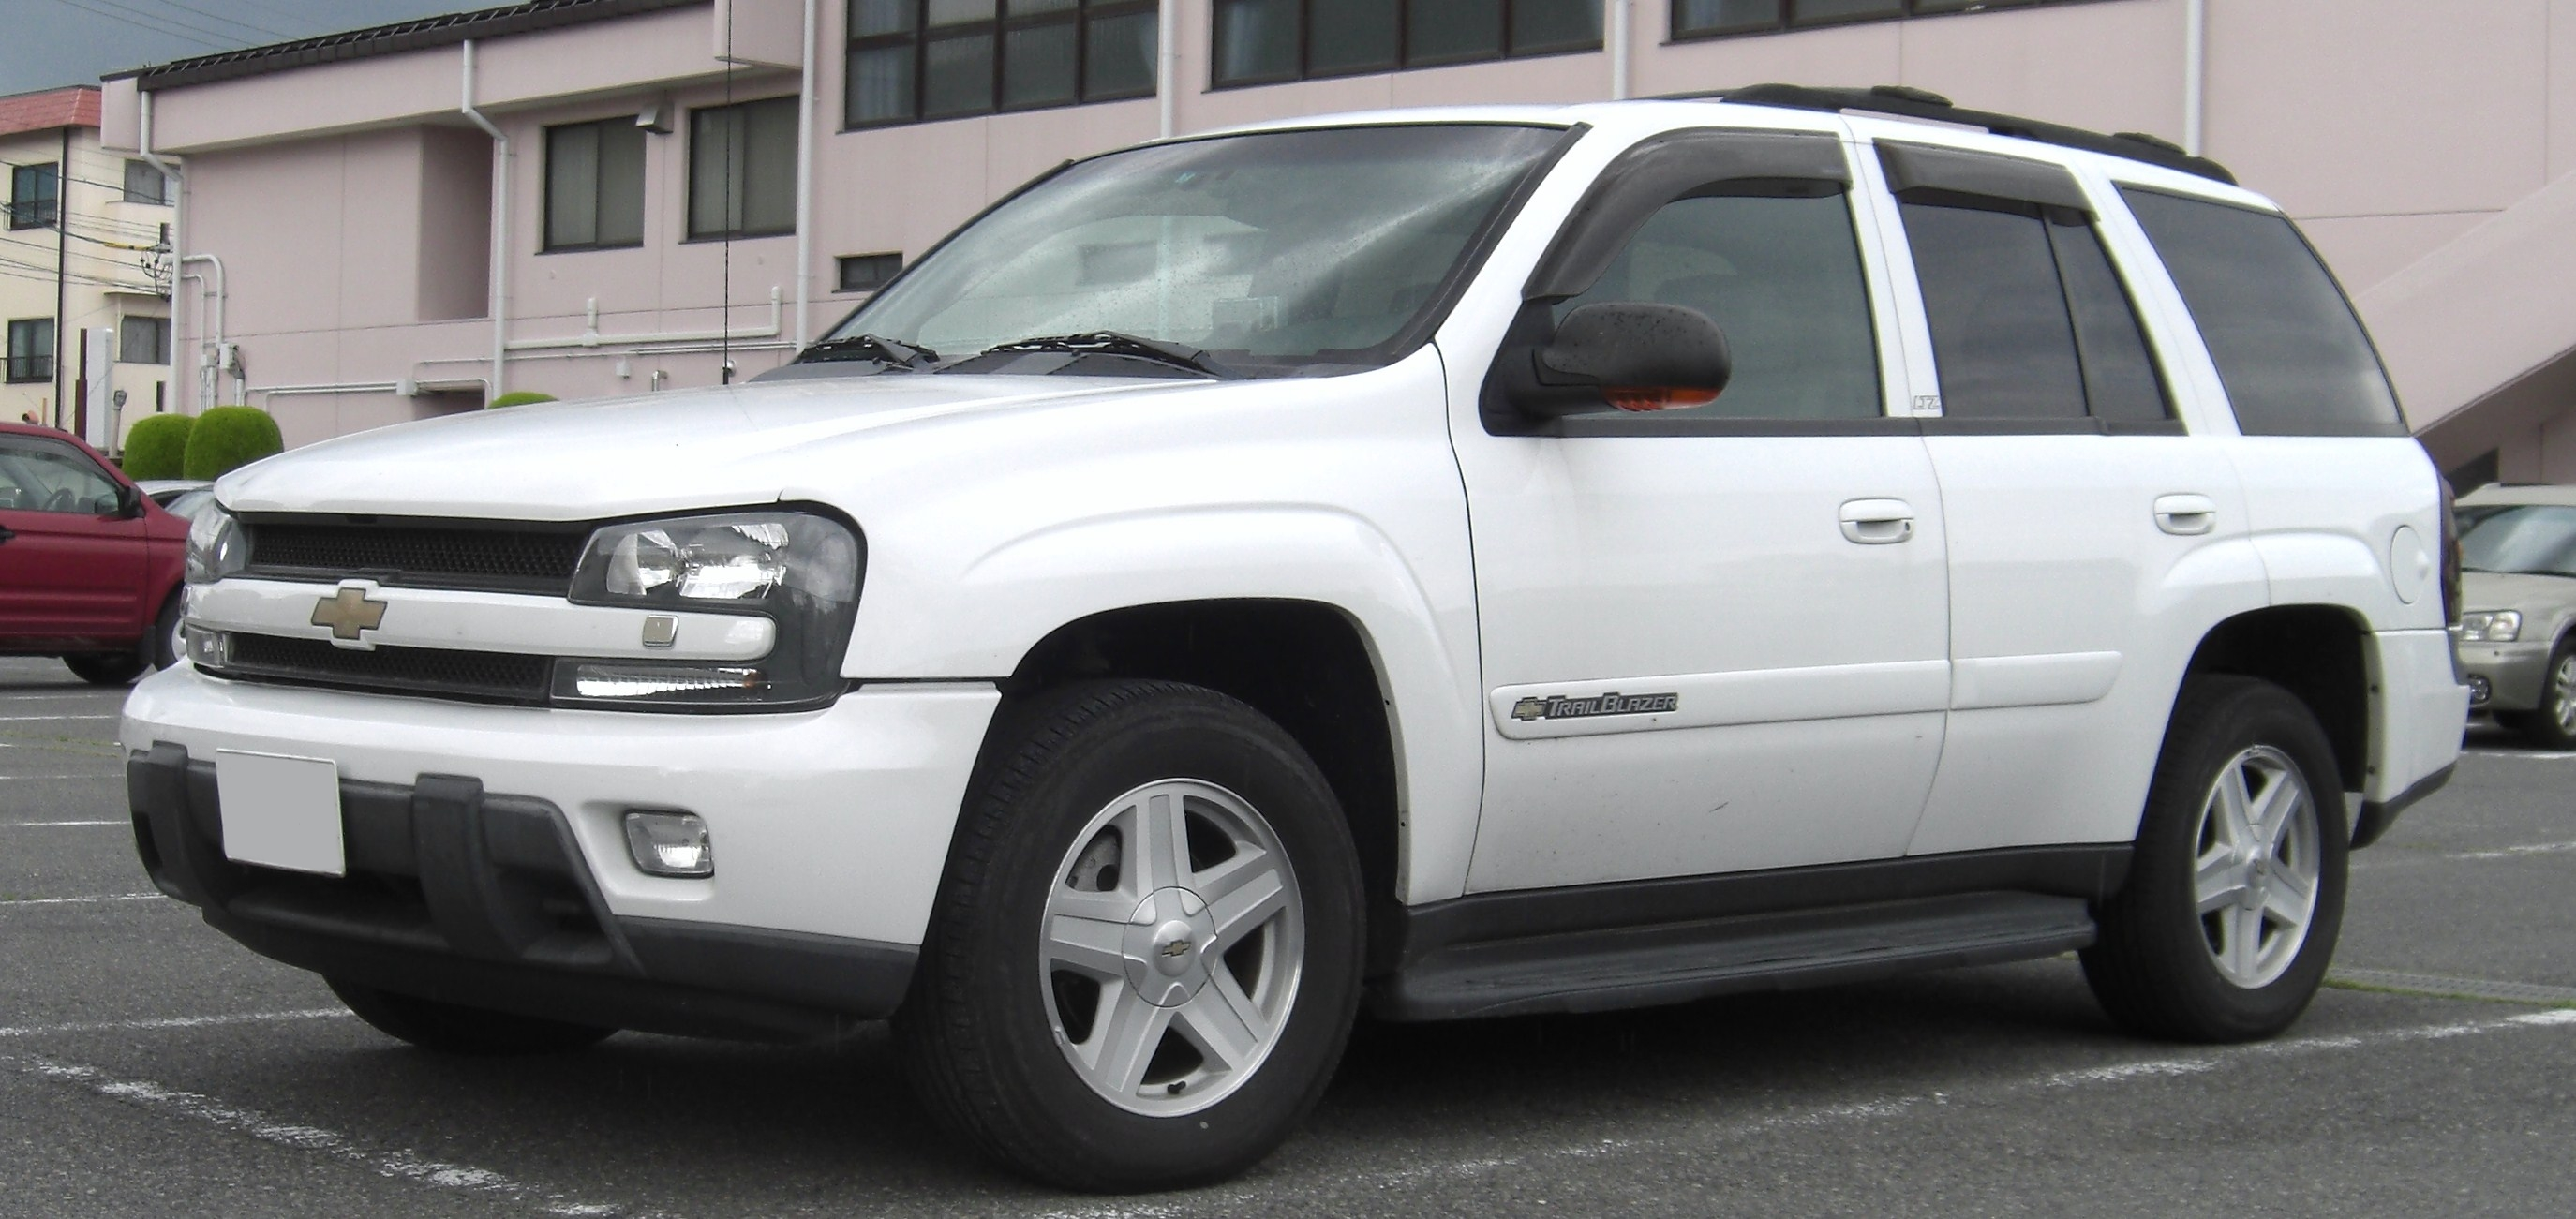 2005 Chevrolet Trailblazer #5